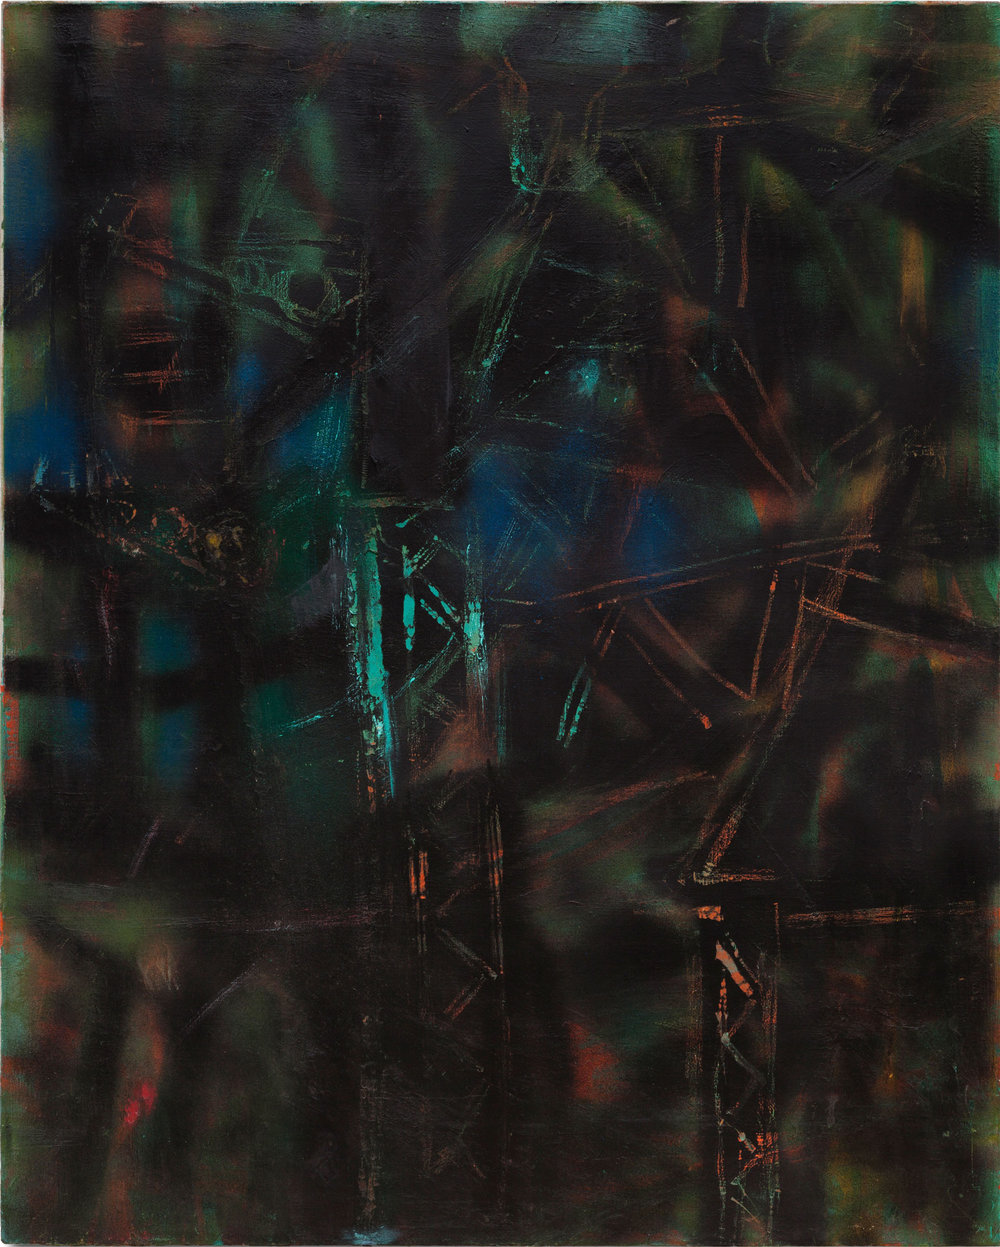 Hedda Sterne, Untitled, c. 1953, Oil and spray paint on canvas, 42 in. x 34 in.